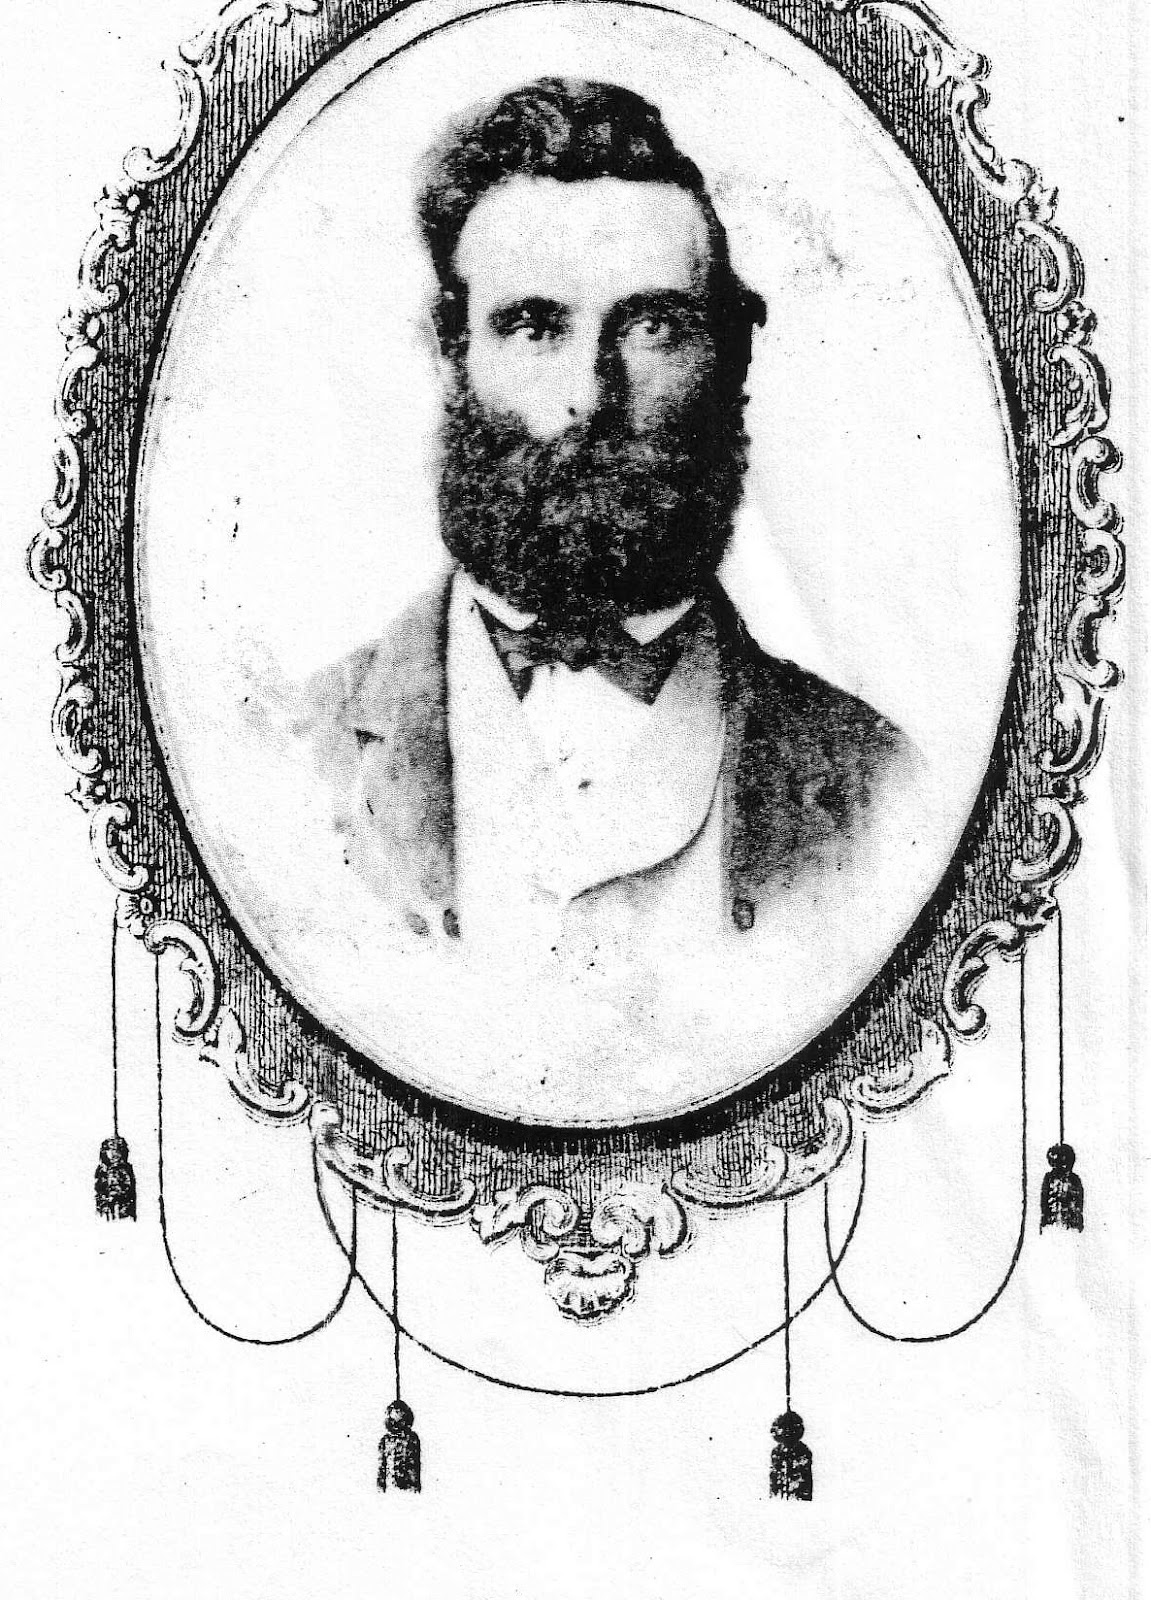 Jackson County, Oregon History Notes: Myers or Mt. Vernon